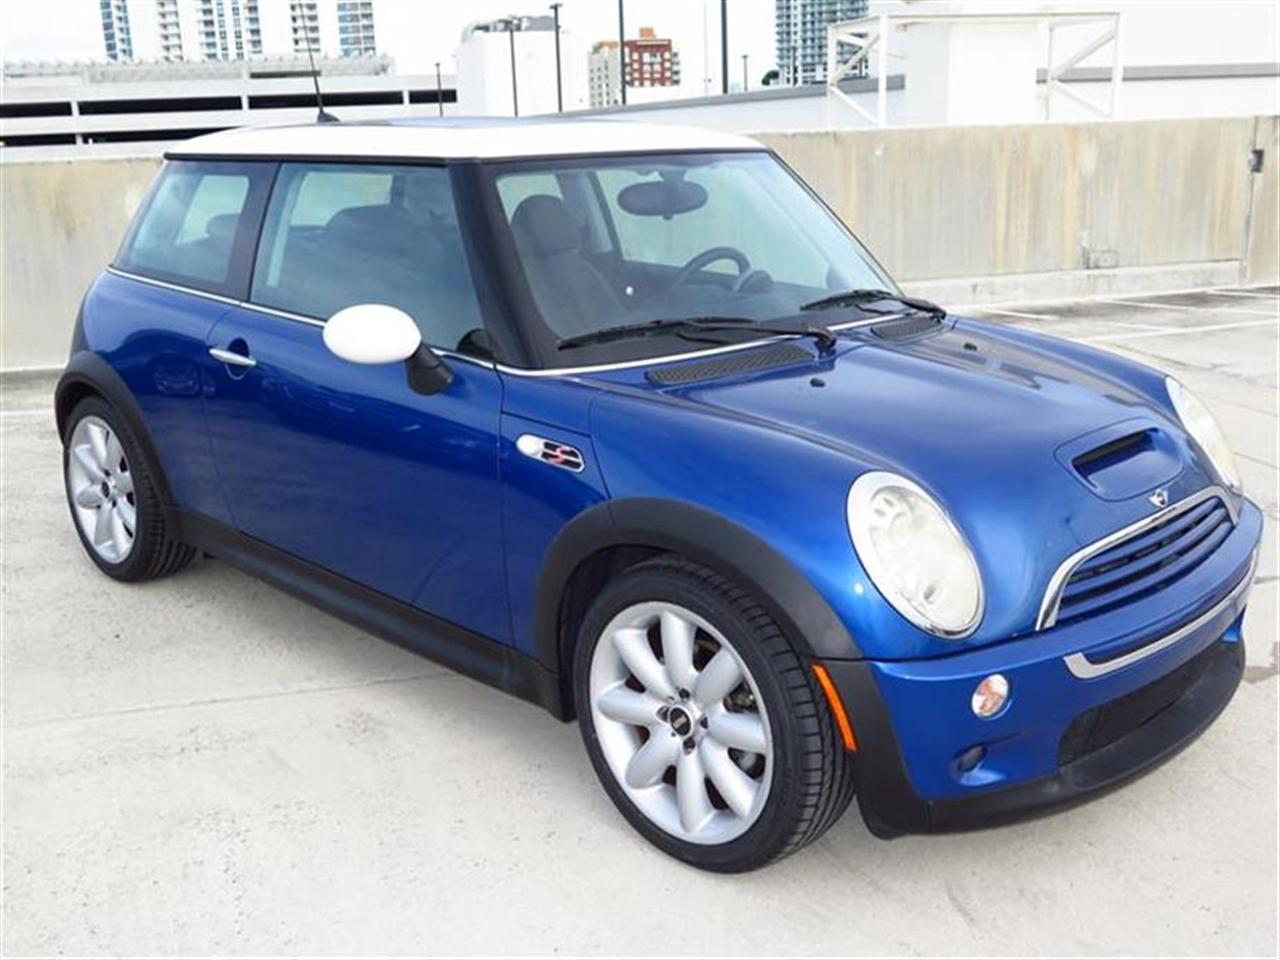 2006 MINI COOPER S 2dr Cpe S 30281 miles 12V auxiliary pwr outlet in luggage compartment 5050 sp